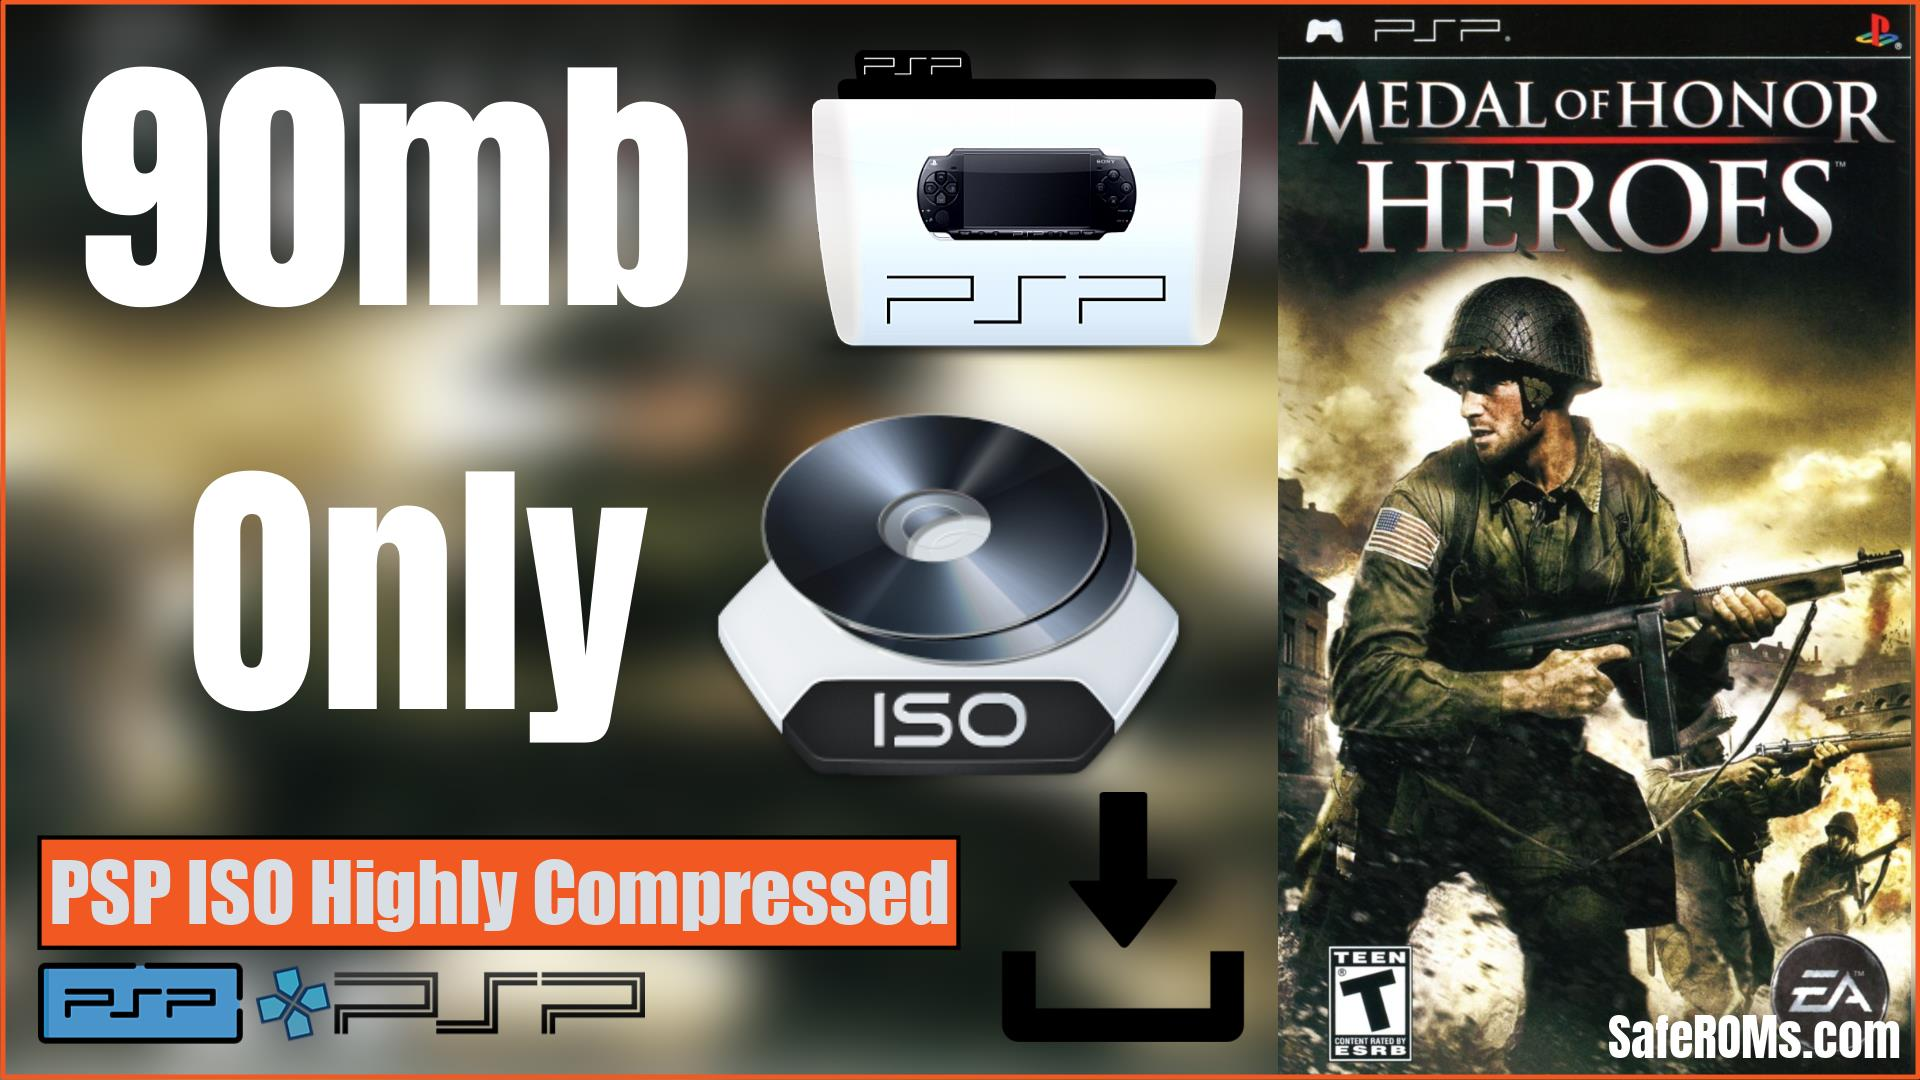 Medal of Honor Heroes PSP ISO Highly Compressed Download